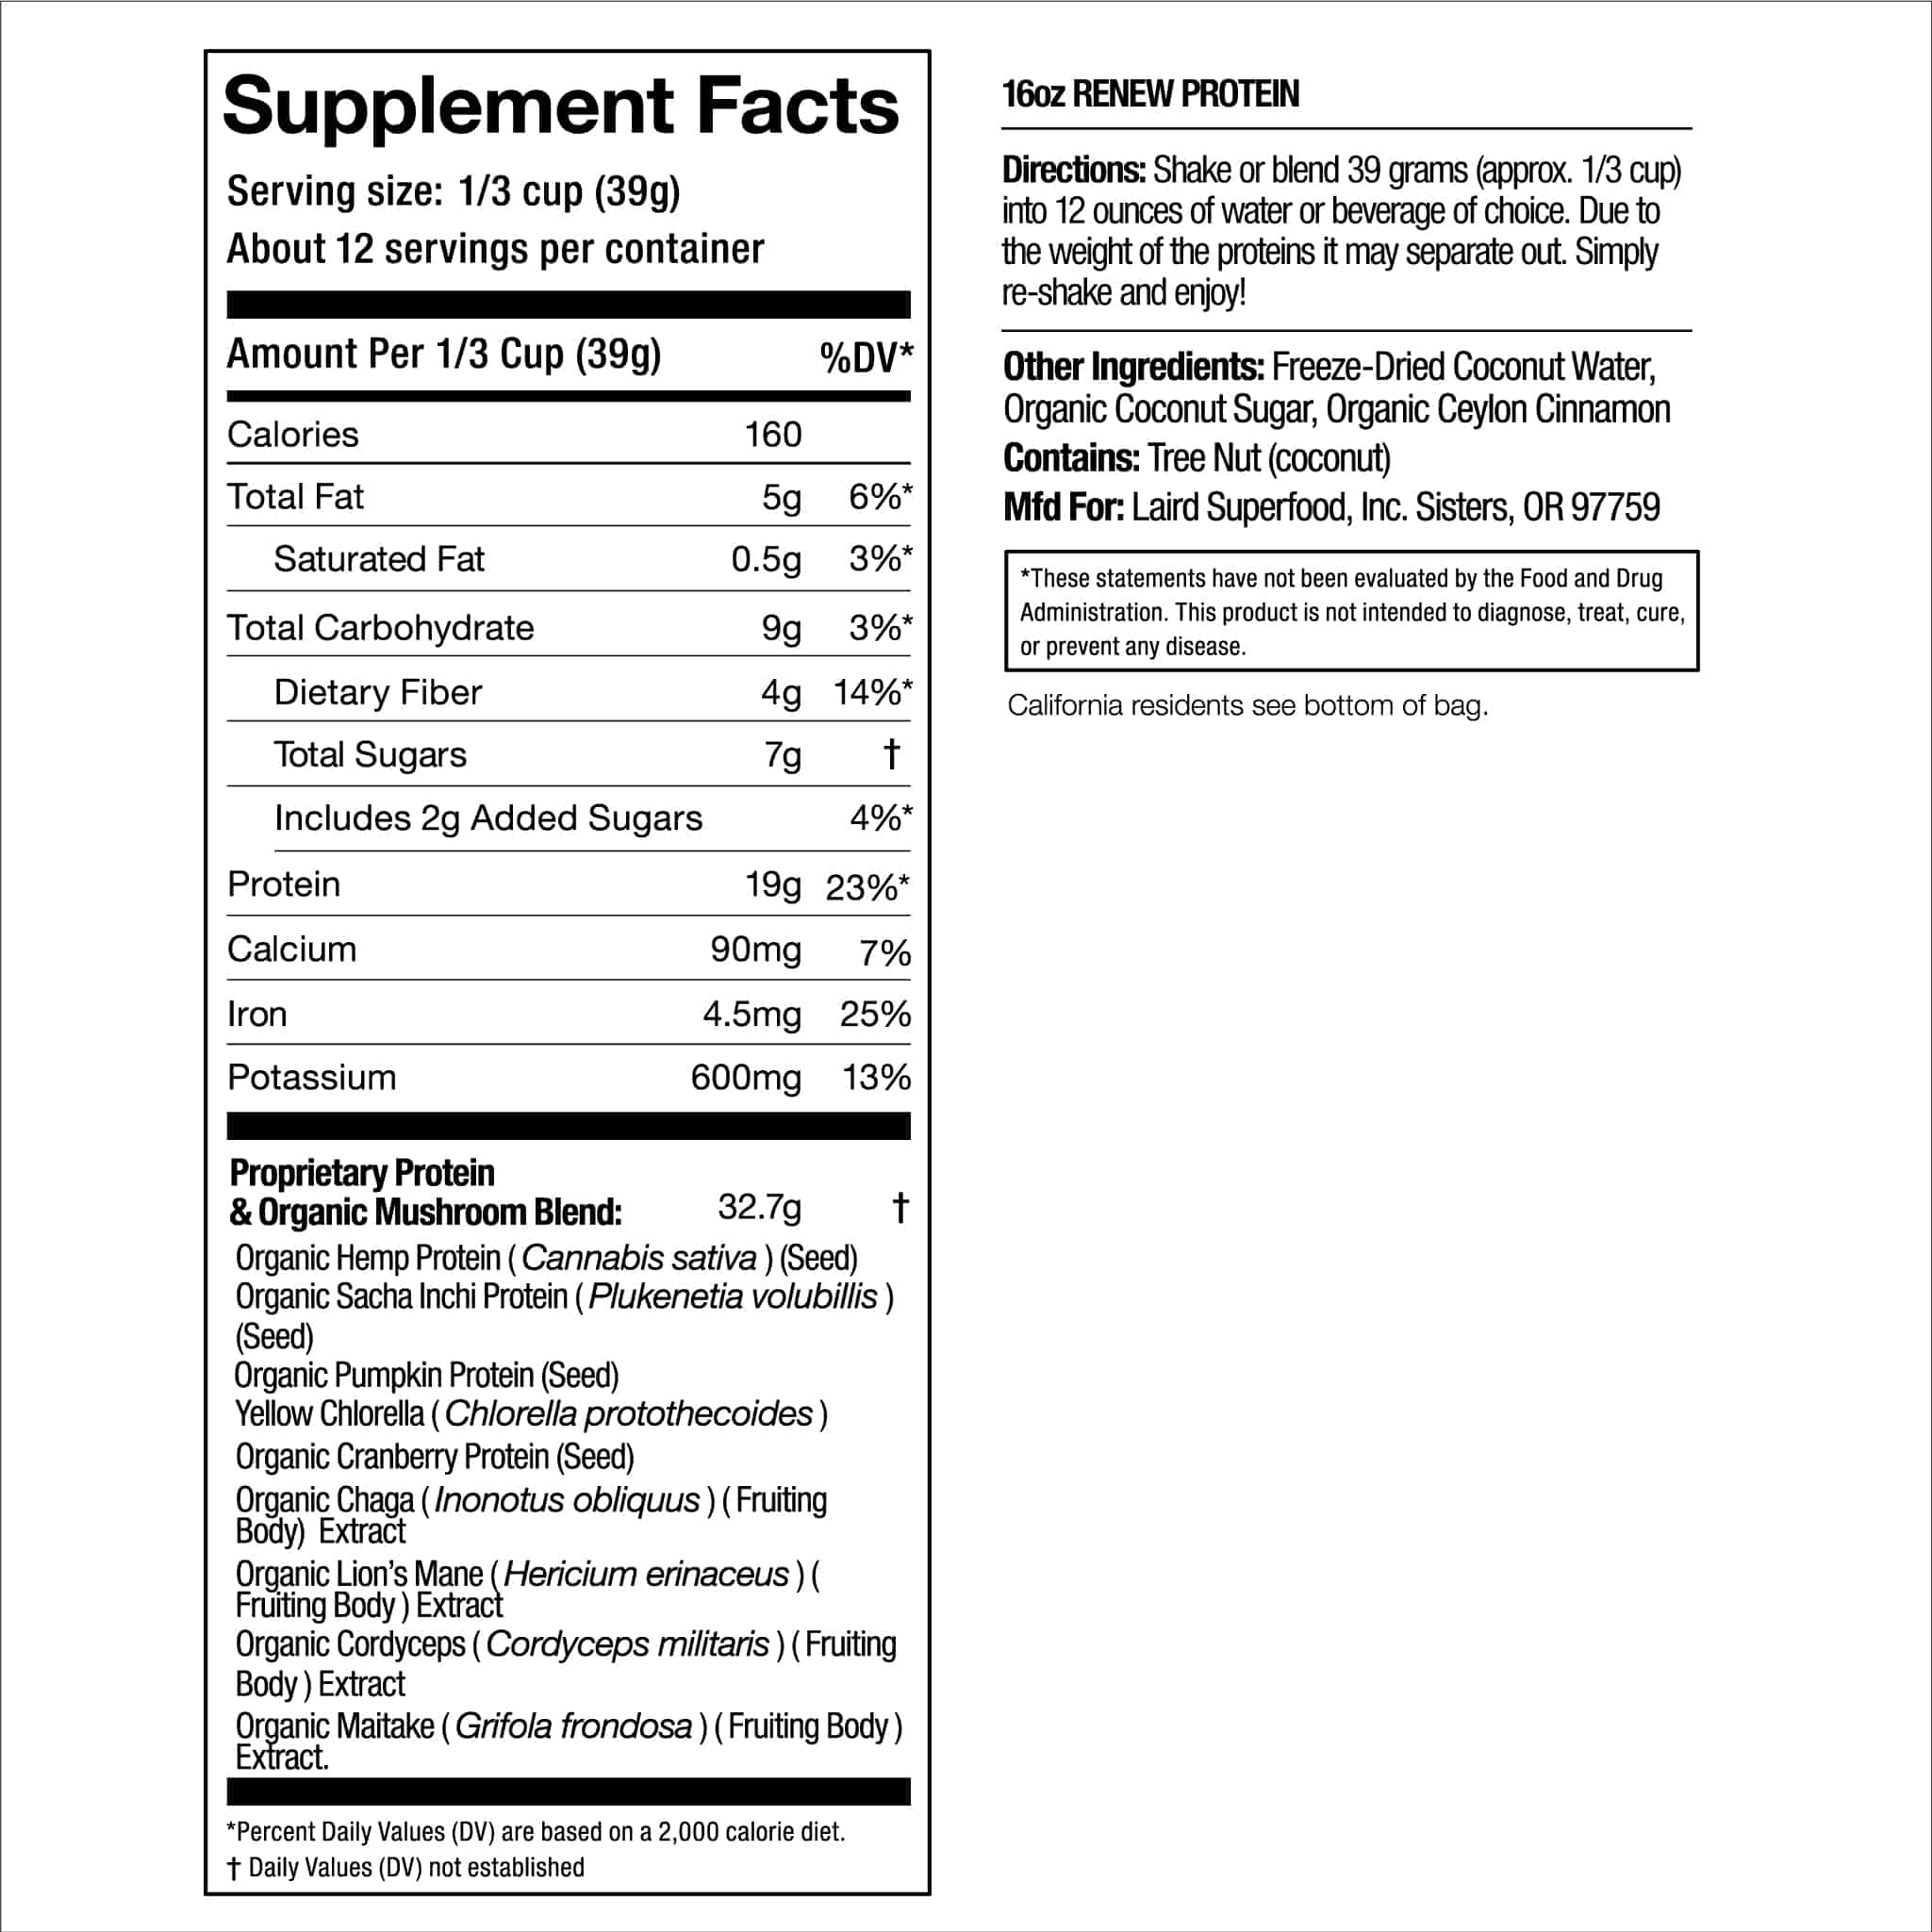 Renew Protein Supplement Facts